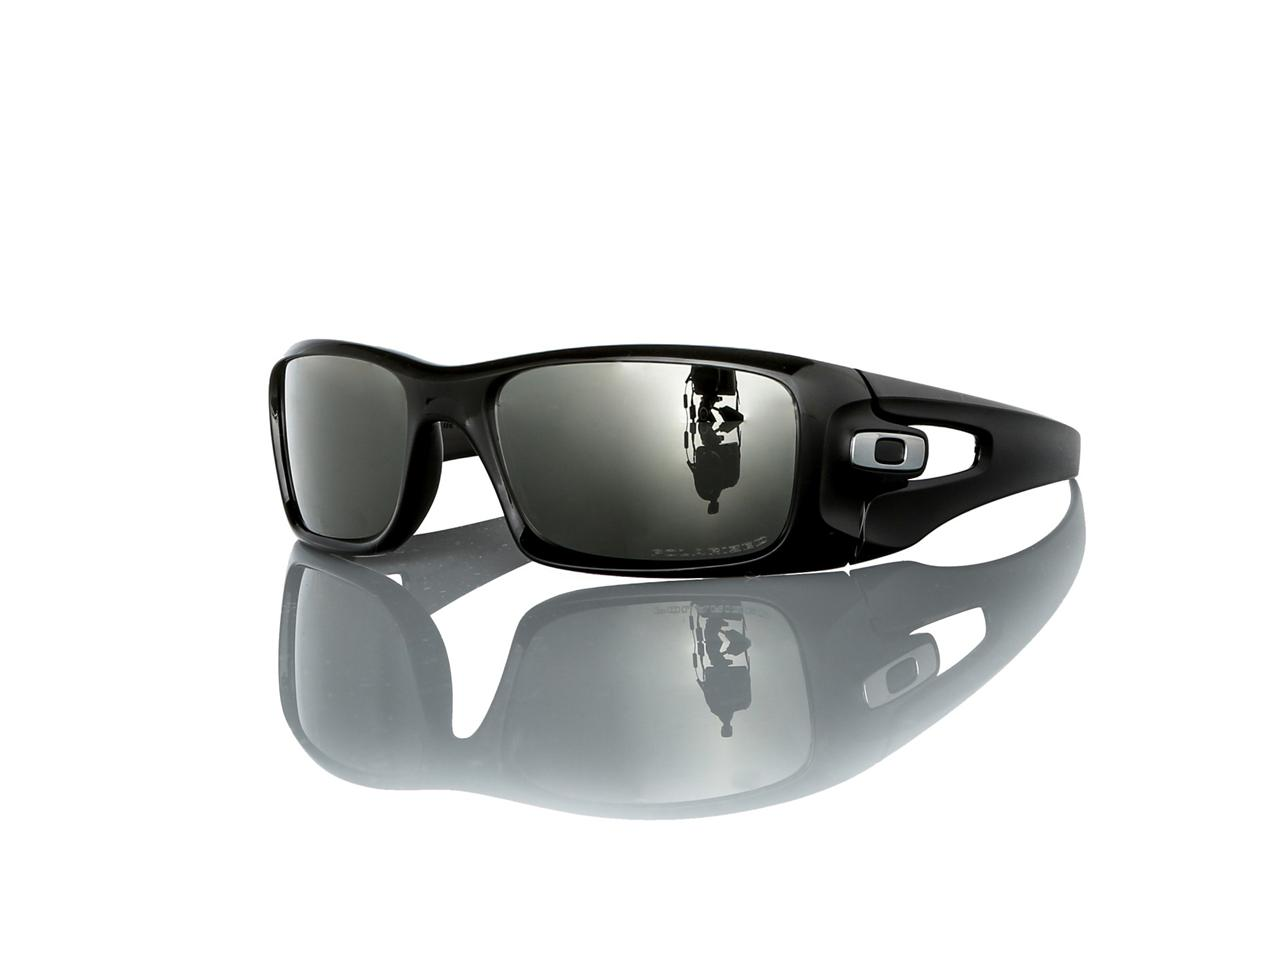 Mens Oakley Sunglasses  new authentic mens oakley sunglasses crankcase 9165 01 02 07 08 09